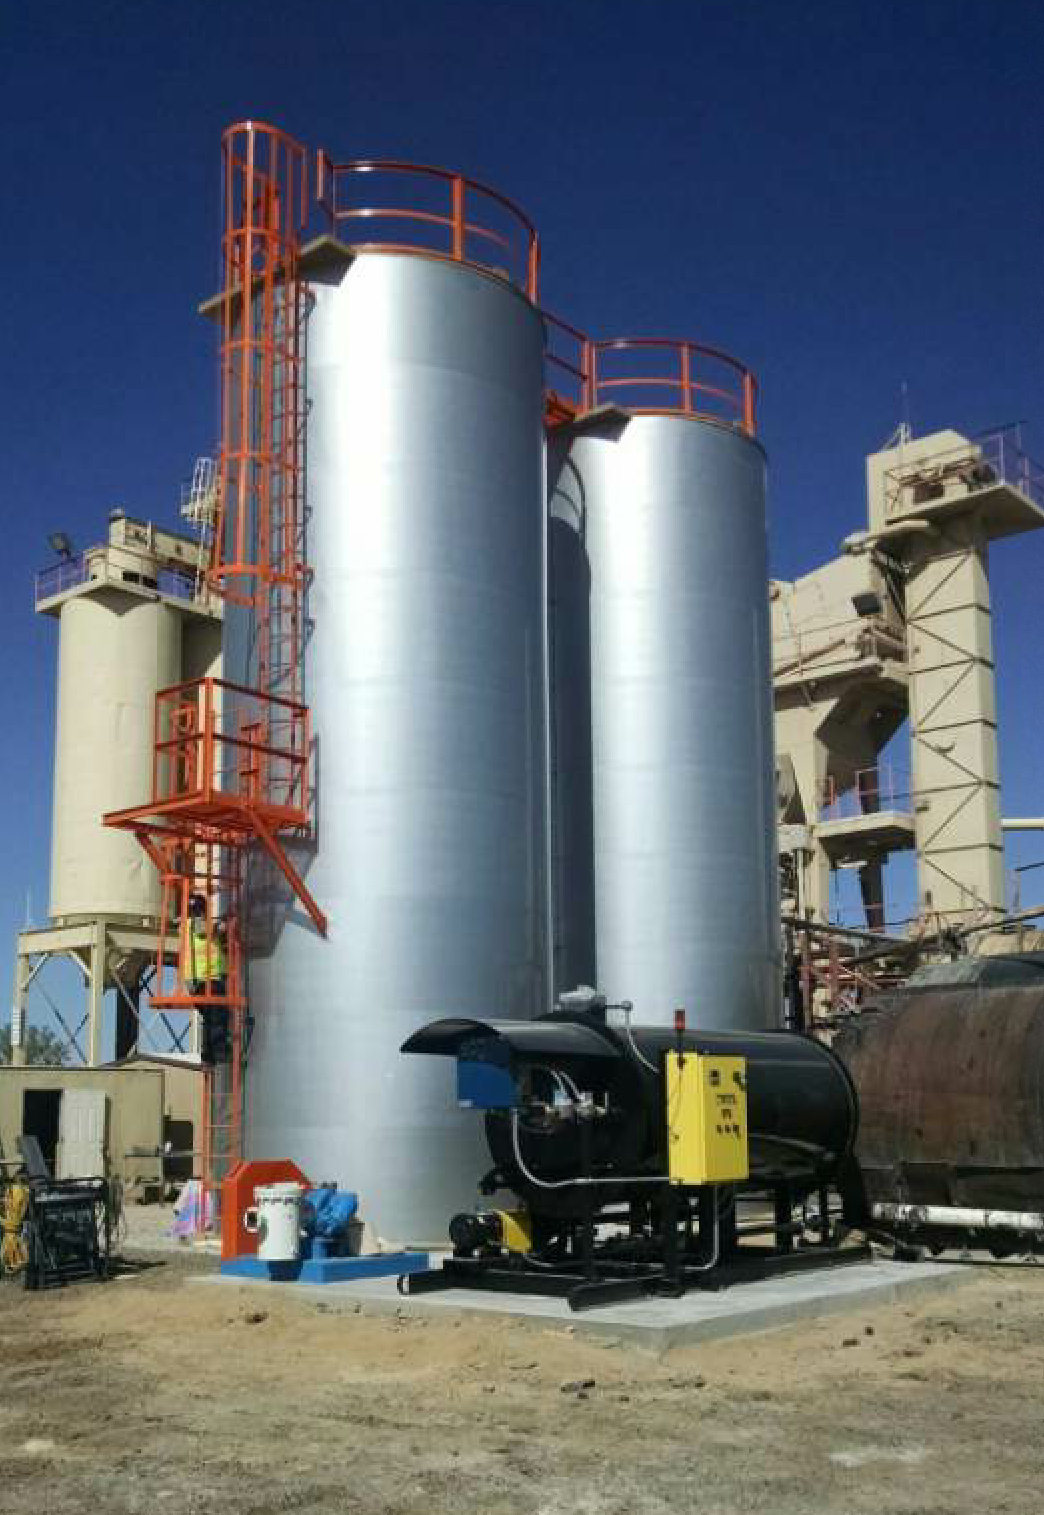 The Burke asphalt storage tanks from Reliable Asphalt Products have been updated for the season.